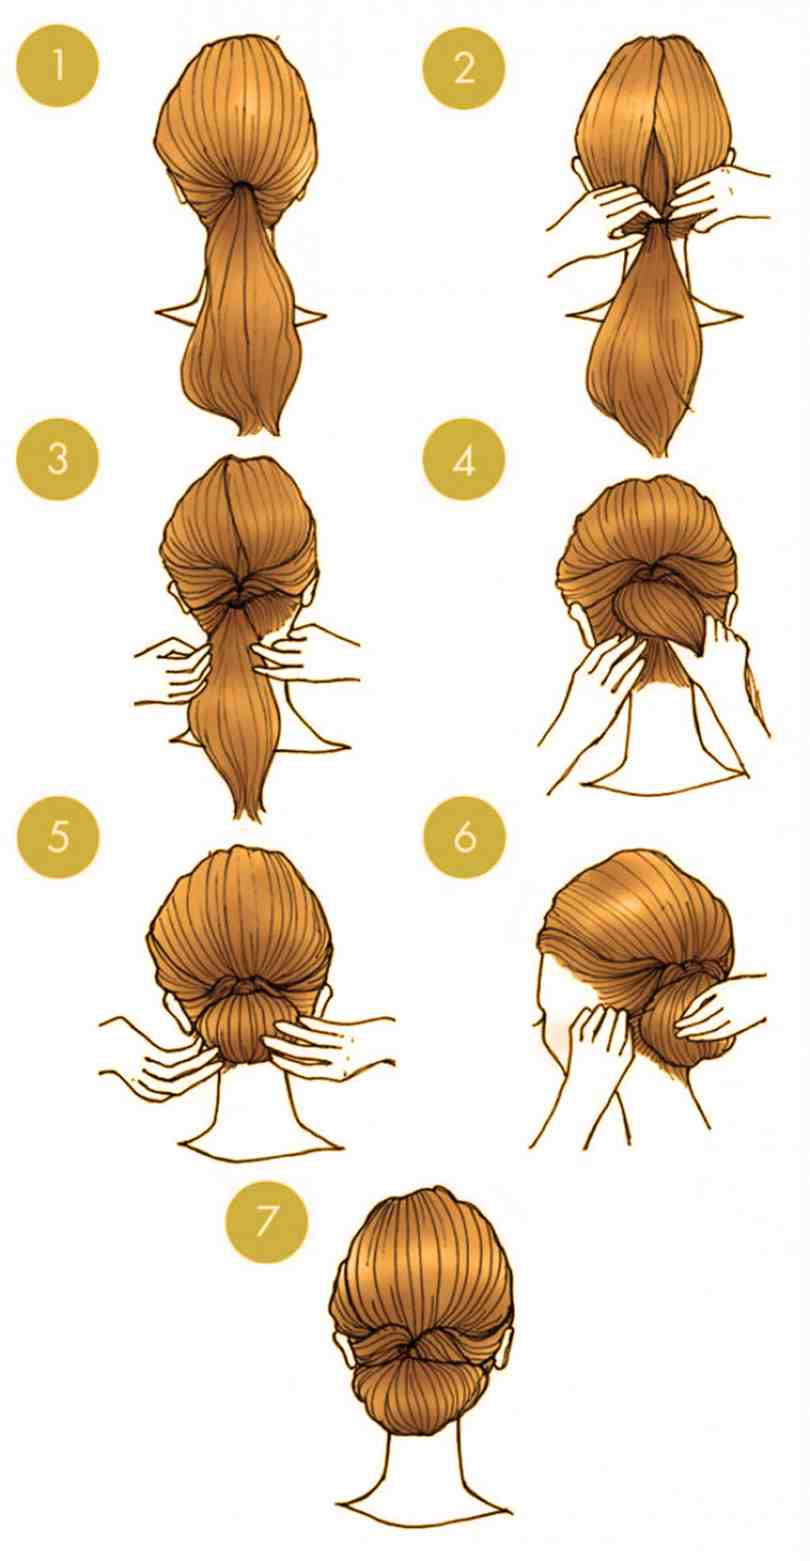 10 Quick Cute Hairstyles That Take Only 2 Minutes Of Your Time 4